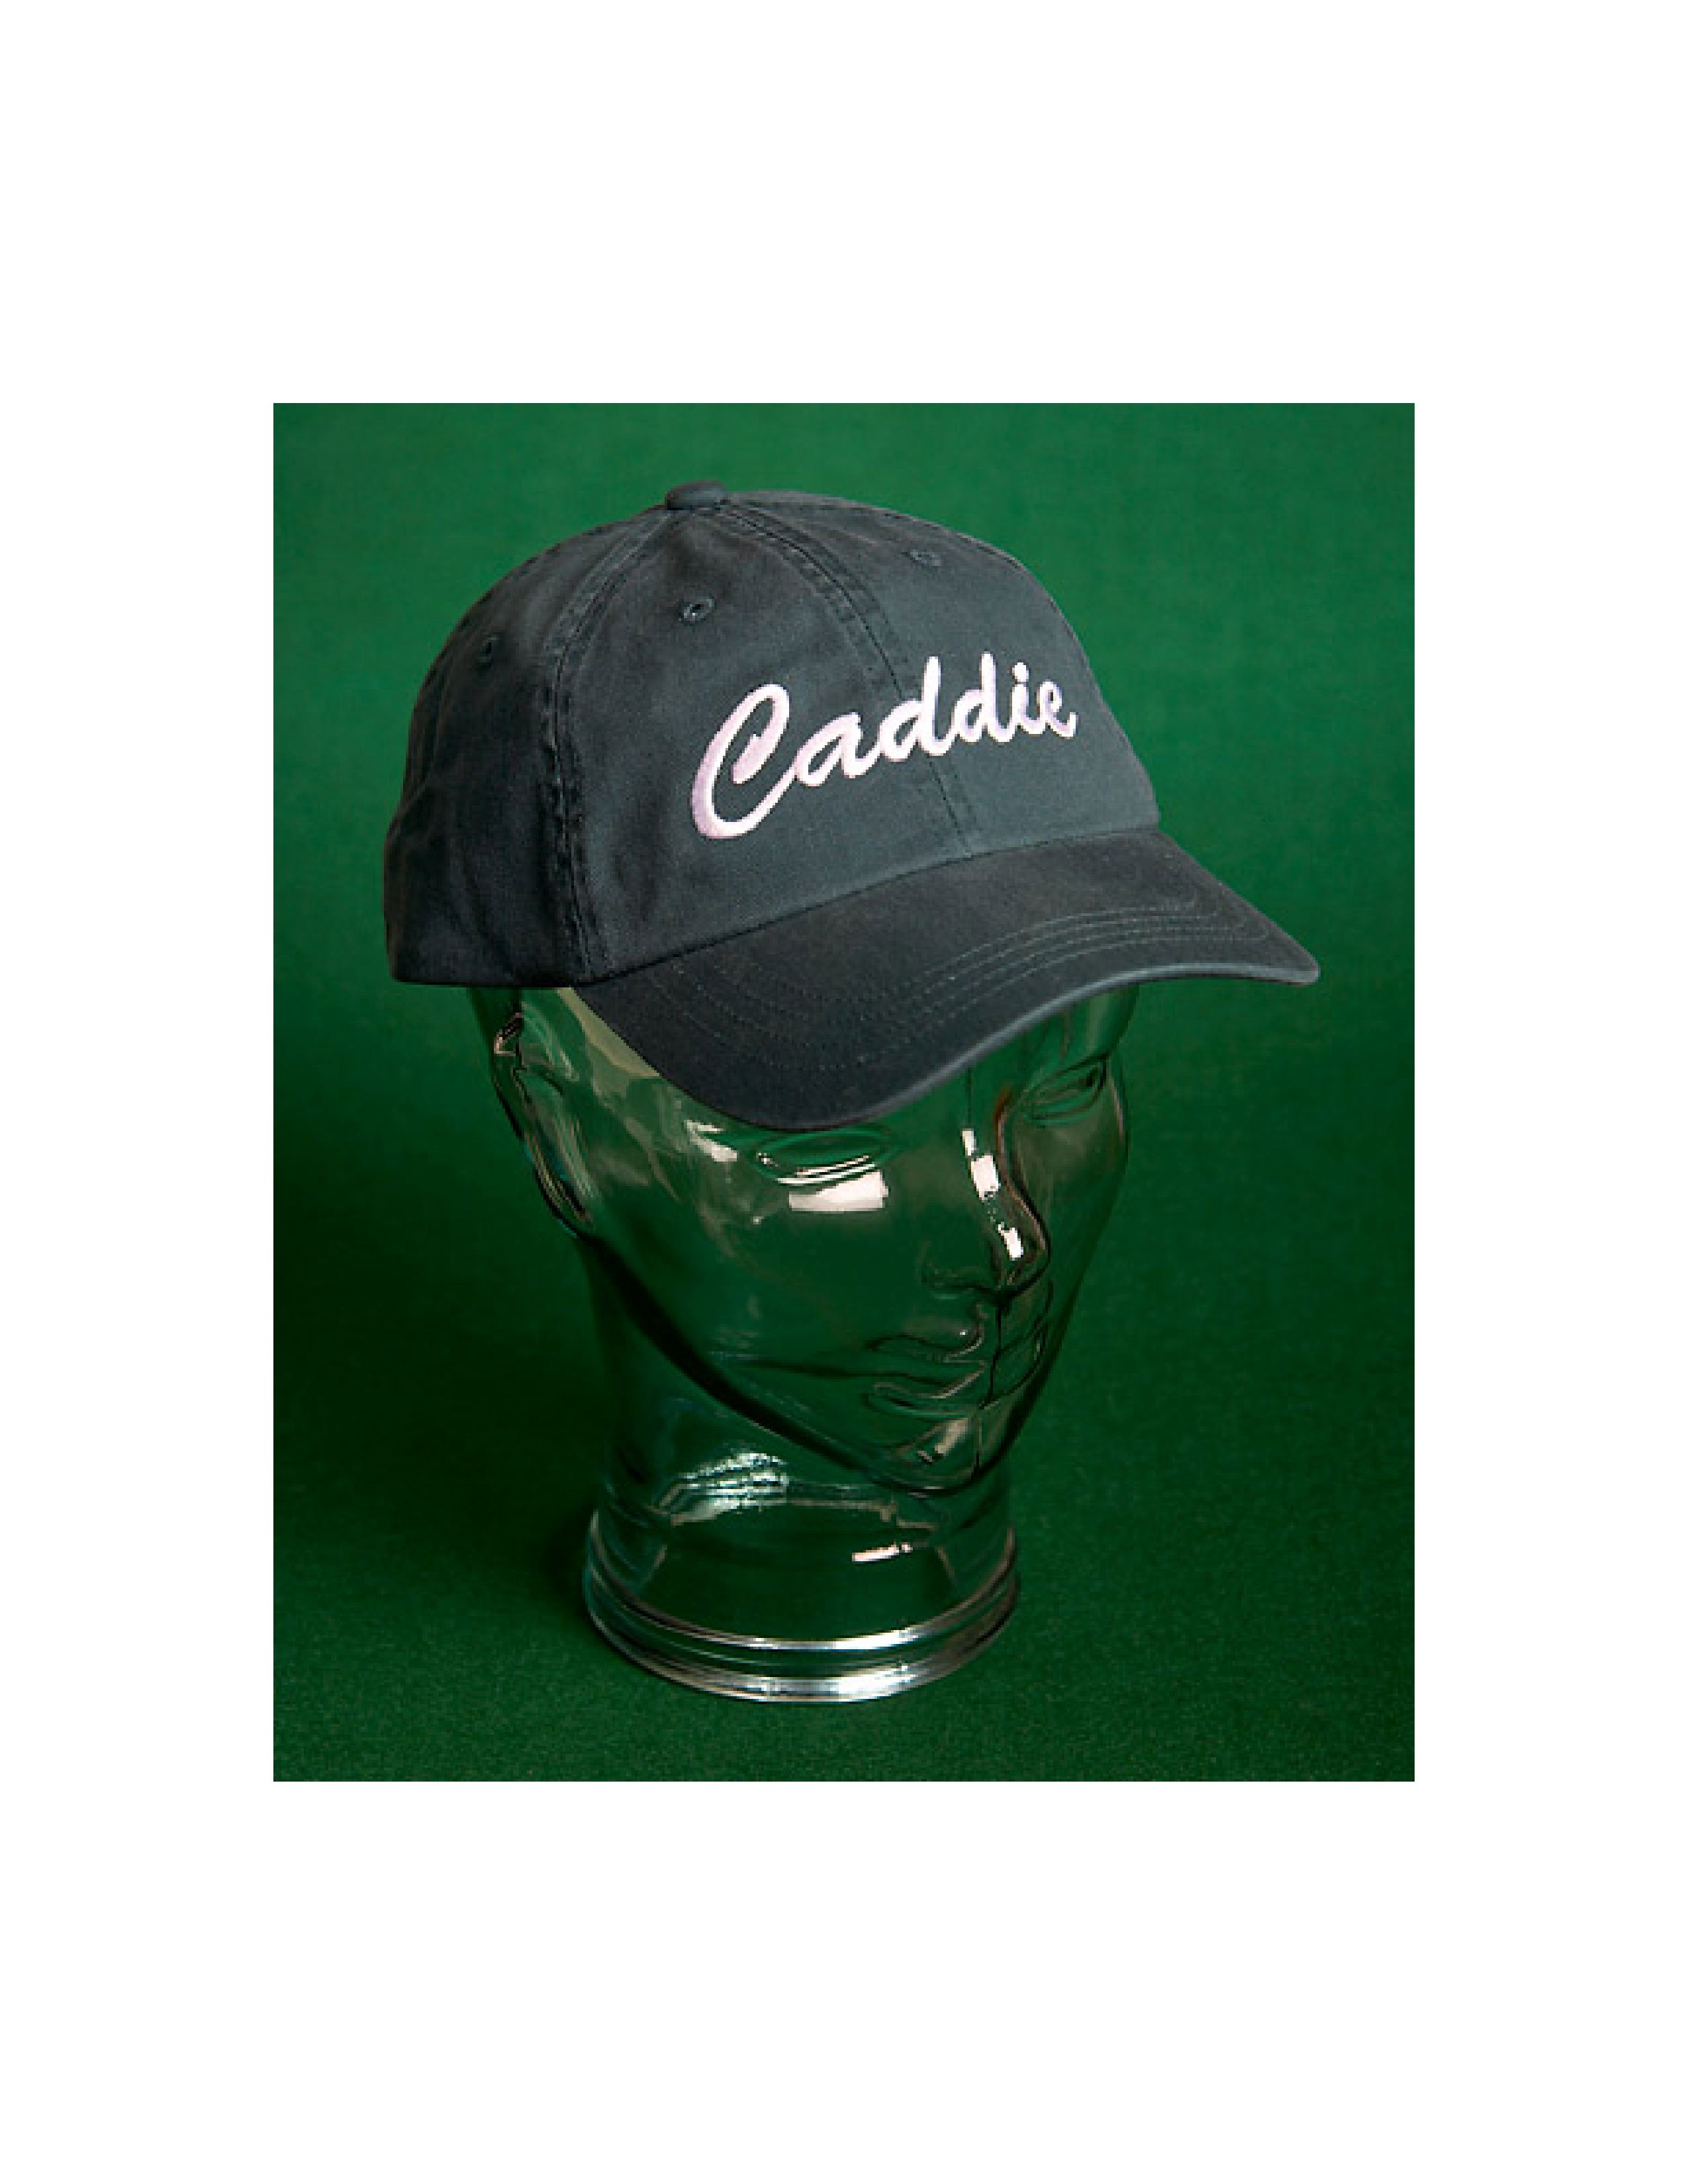 Caddie Hats-International Uniform